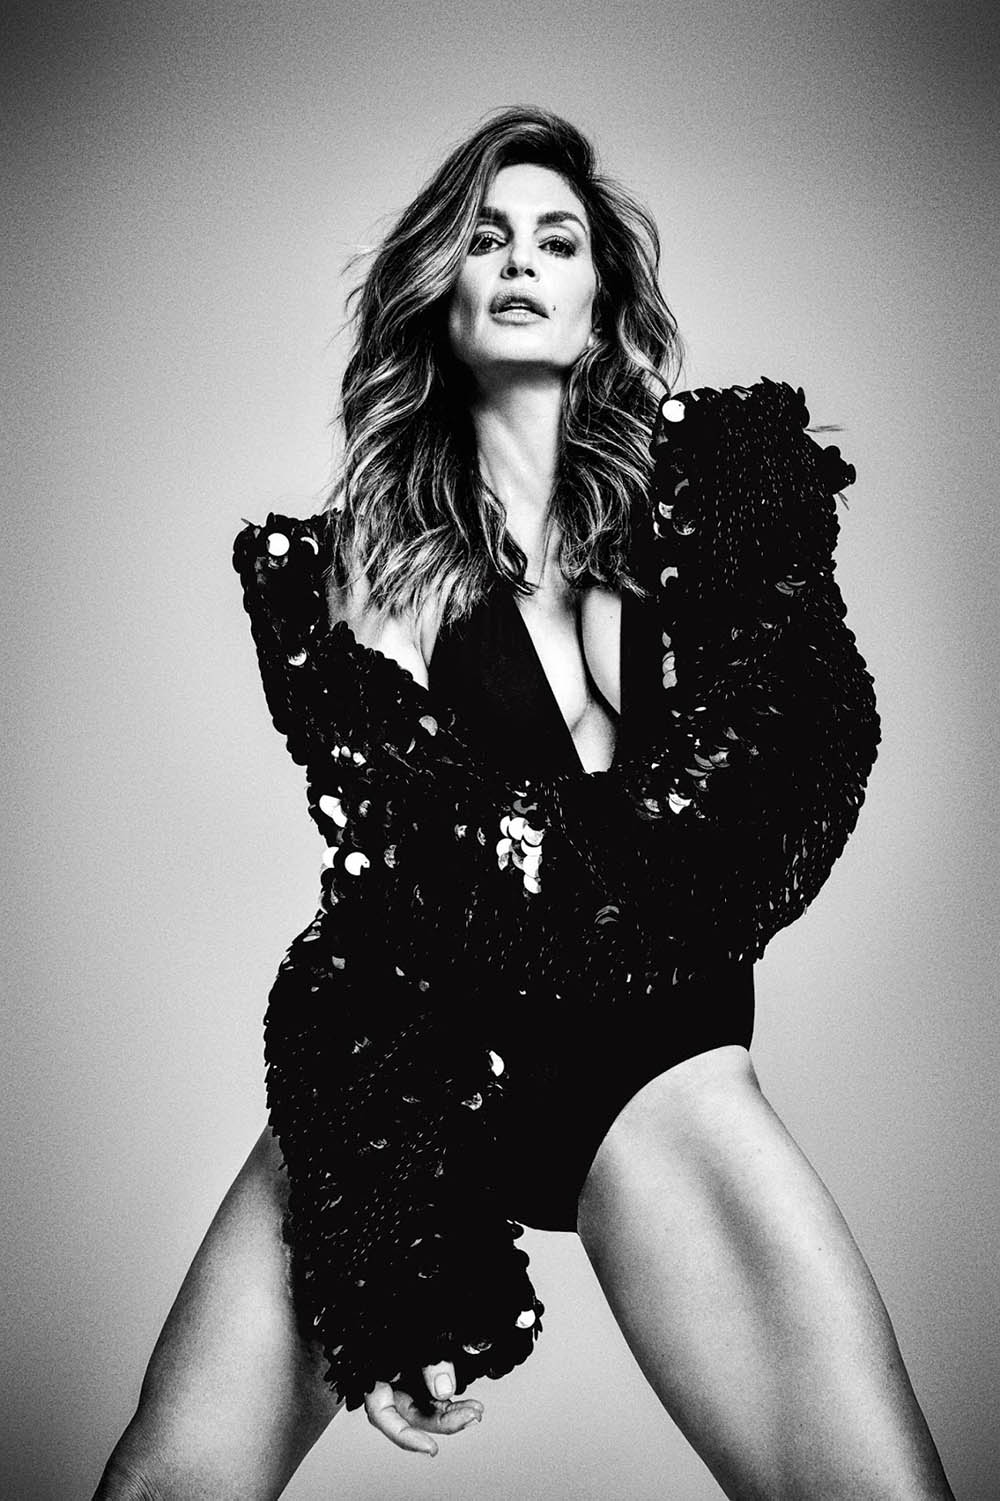 cindy crawford covers madame figaro december 29th  2017 by damon baker